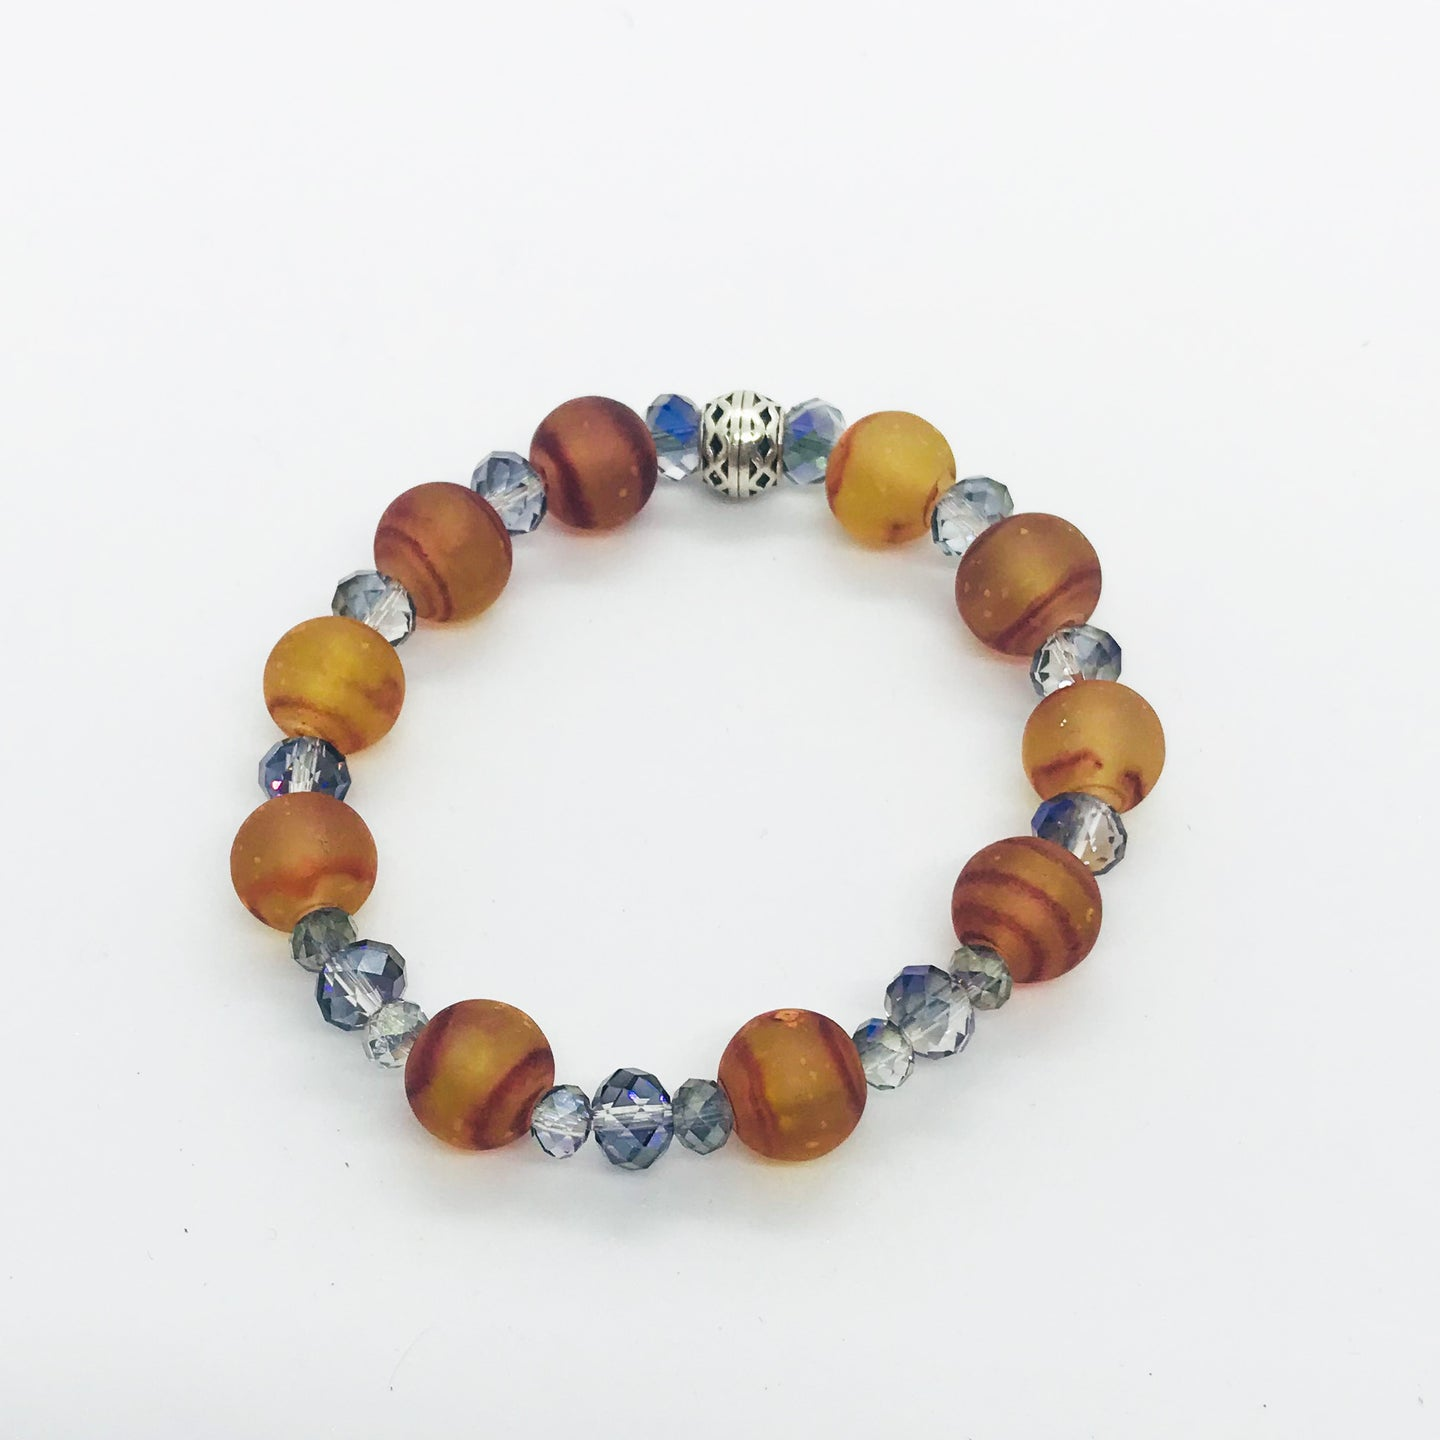 Glass Bead Stretchy Bracelet - B792